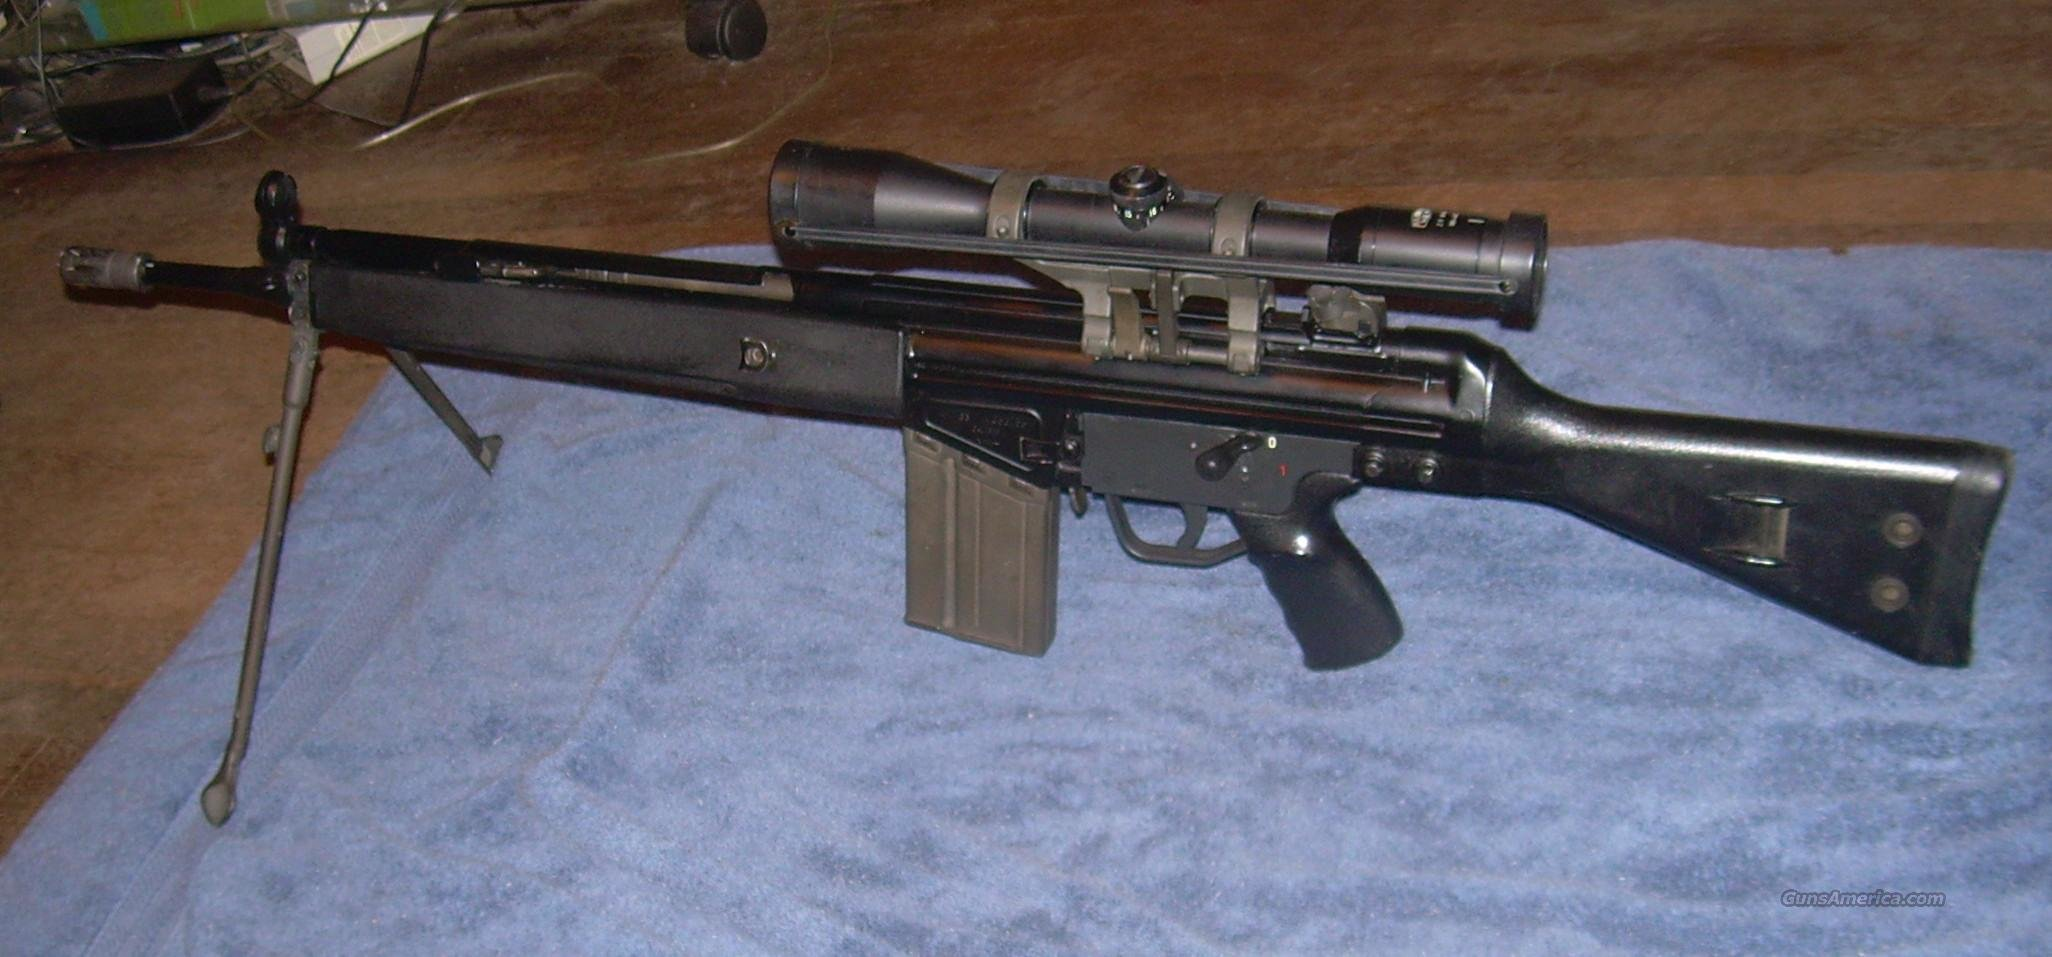 HK 91 marked as G3  Guns > Rifles > Heckler & Koch Rifles > Tactical